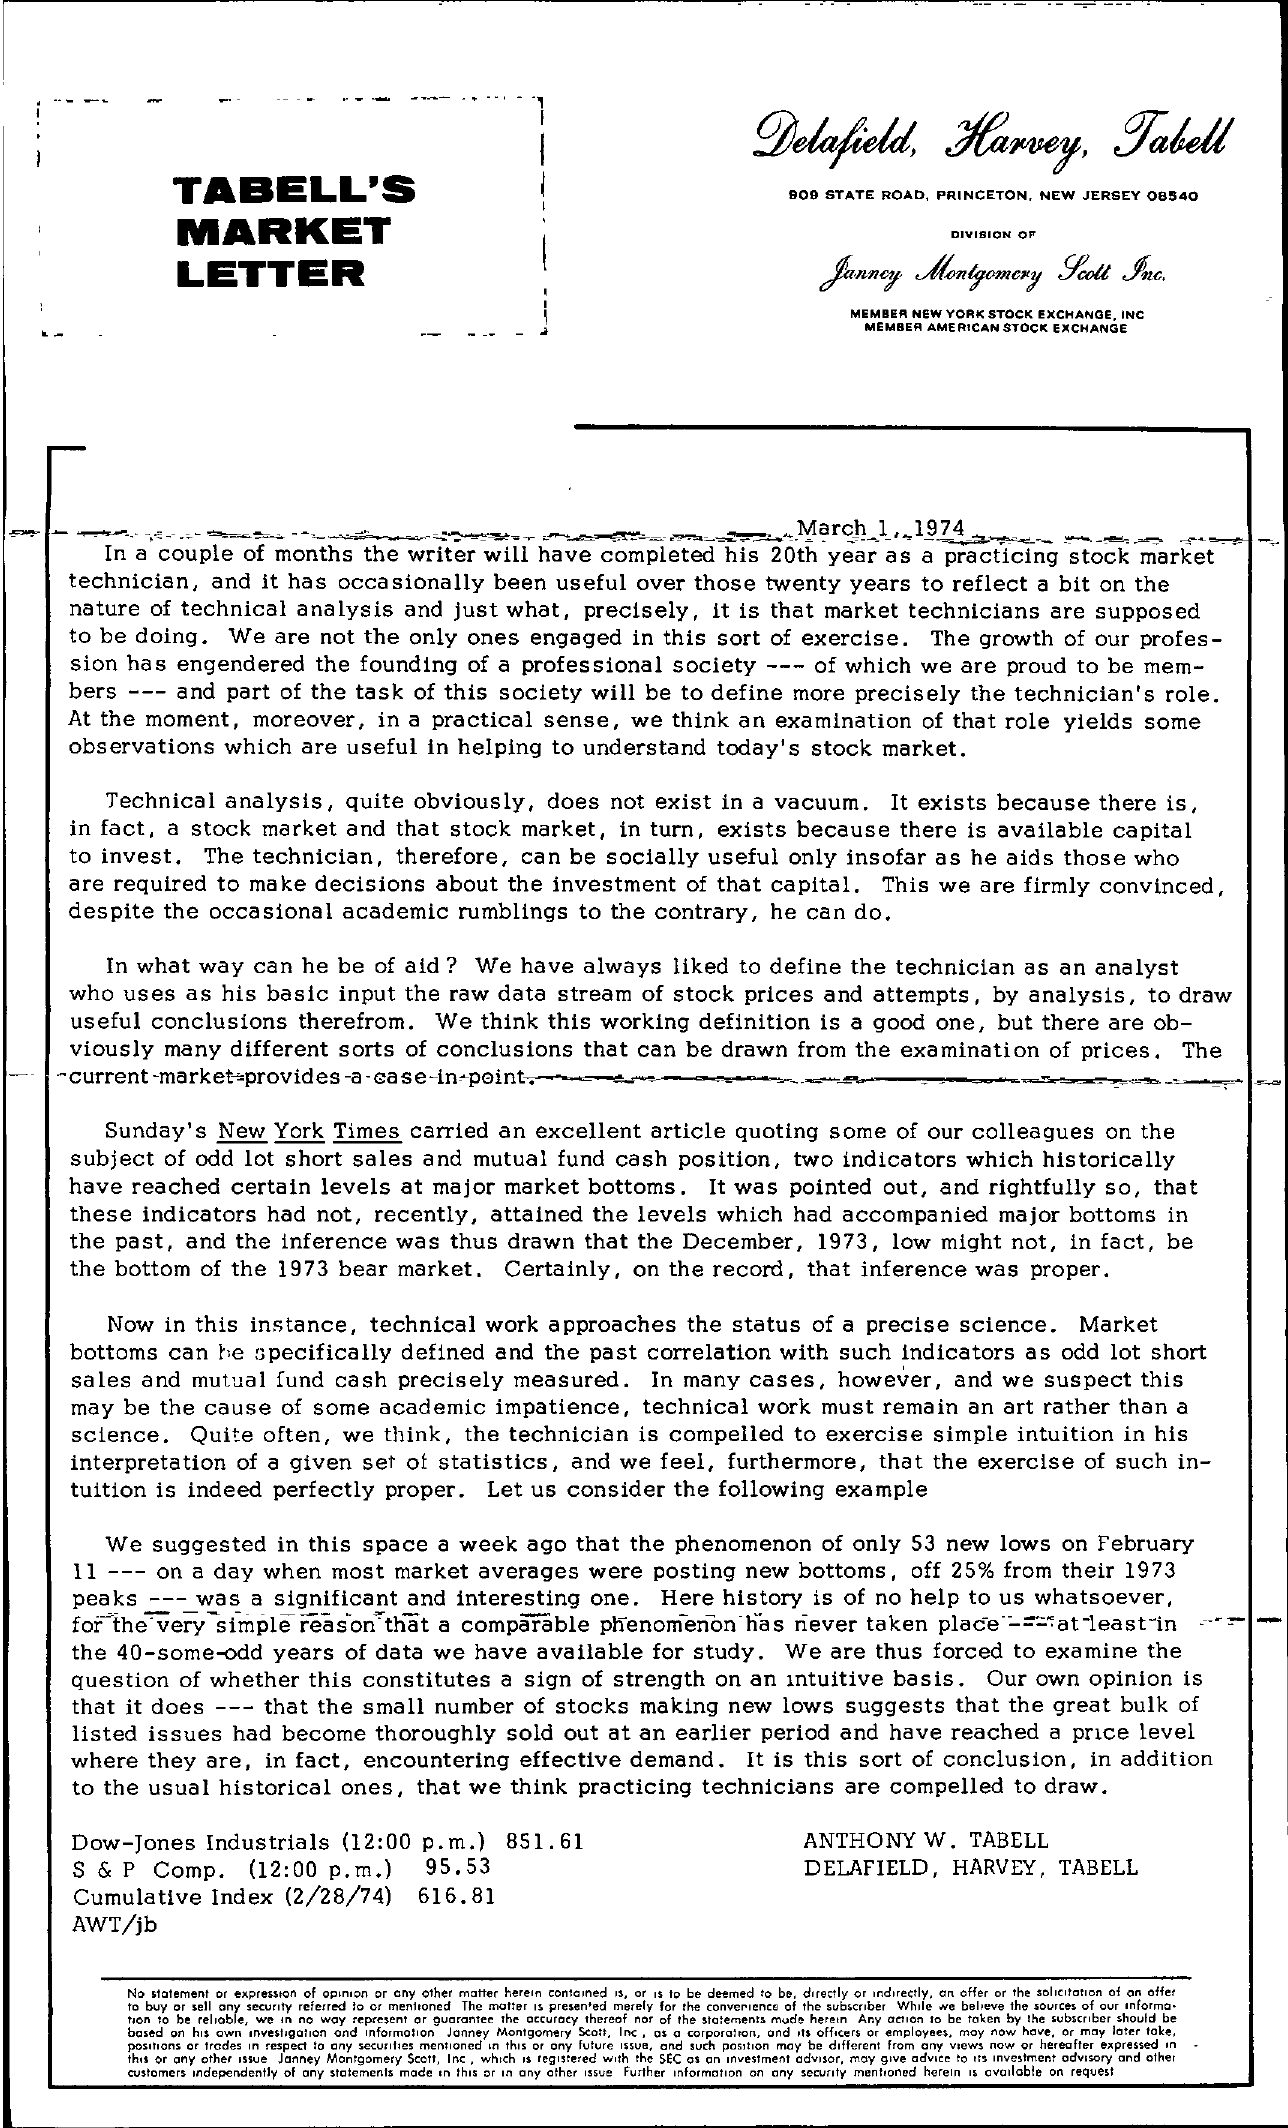 Tabell's Market Letter - March 01, 1974